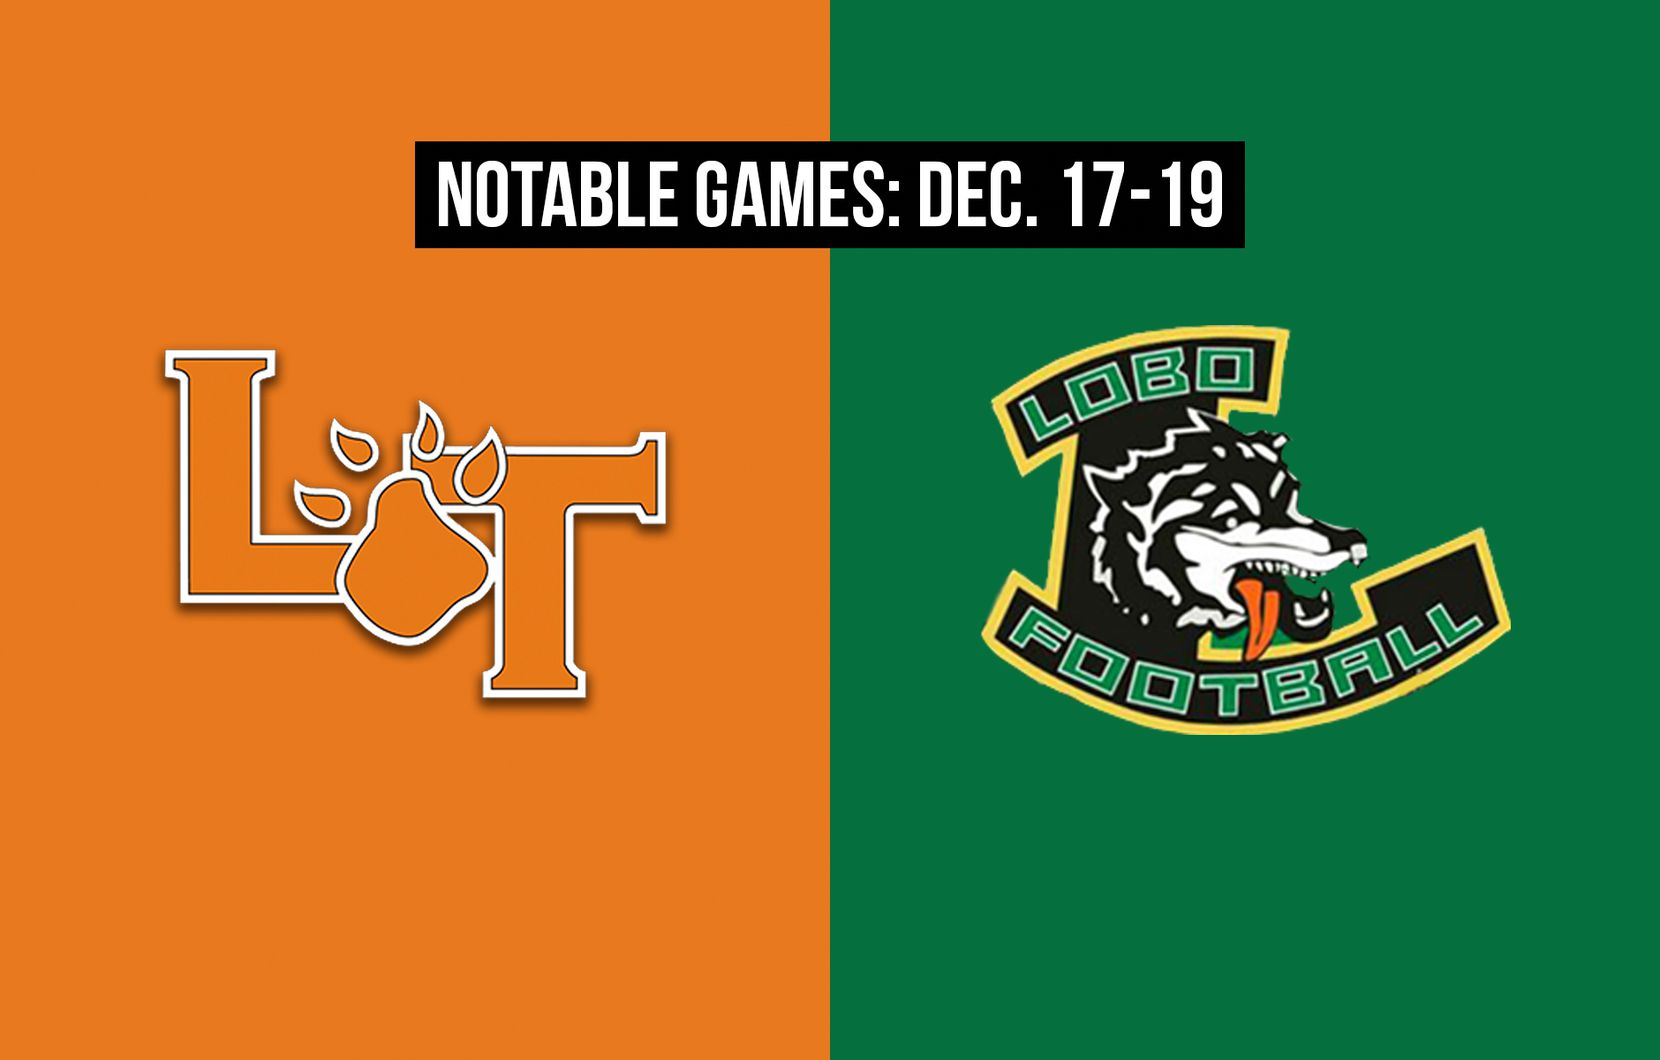 Notable games for the week of Dec. 17-19 of the 2020 season: Lancaster vs. Longview.